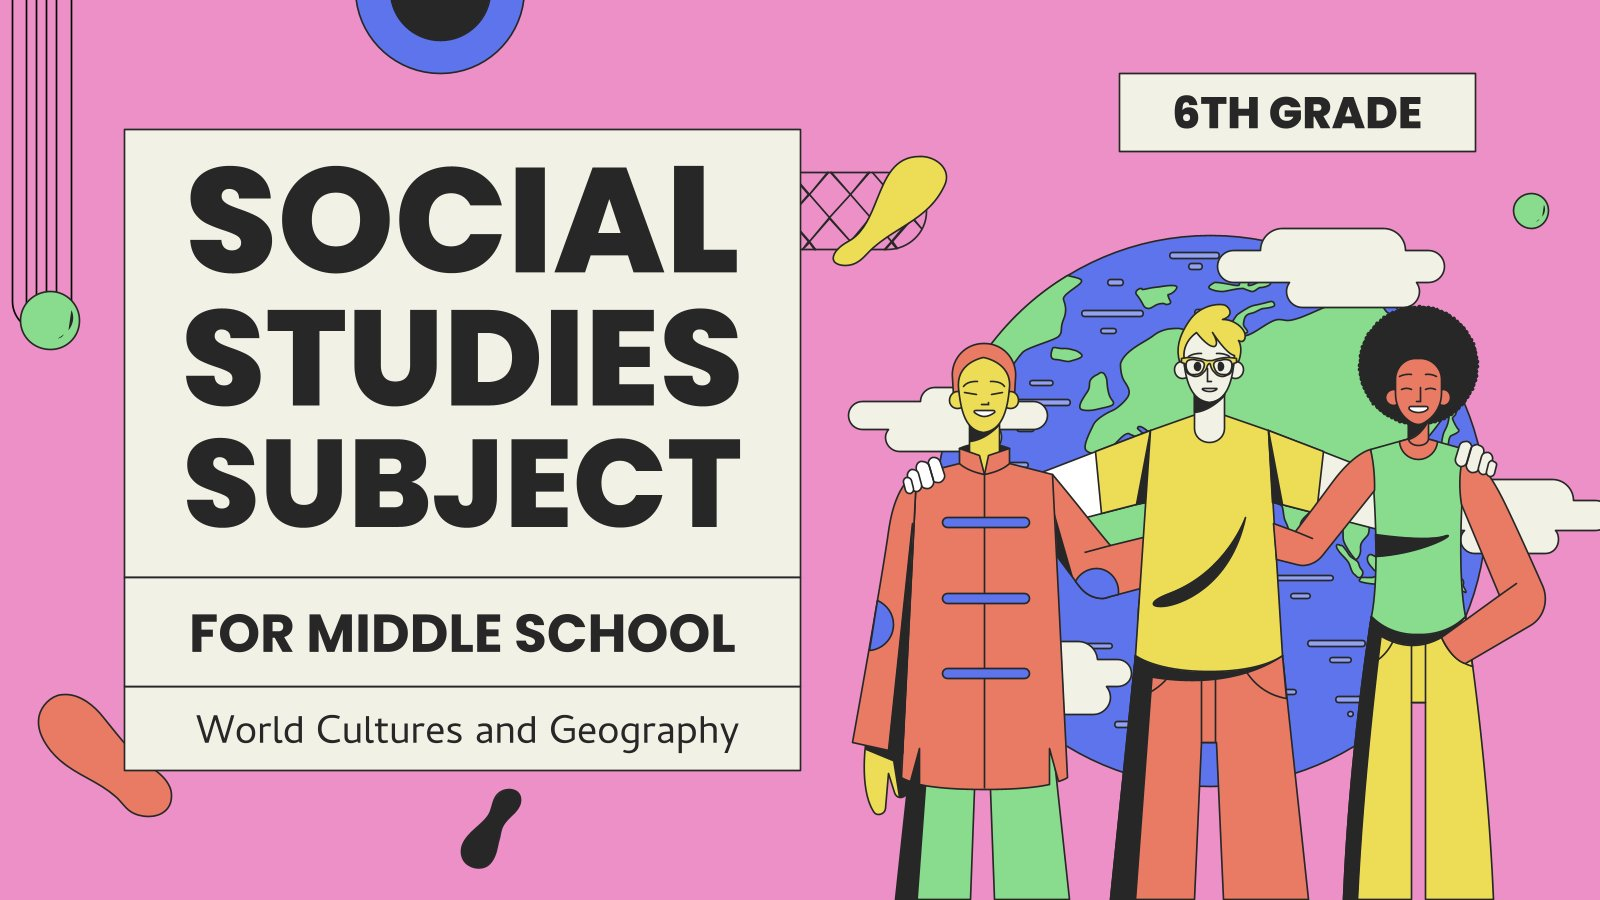 Social Studies Subject for Middle School - 6th Grade: World Cultures and Geography presentation template